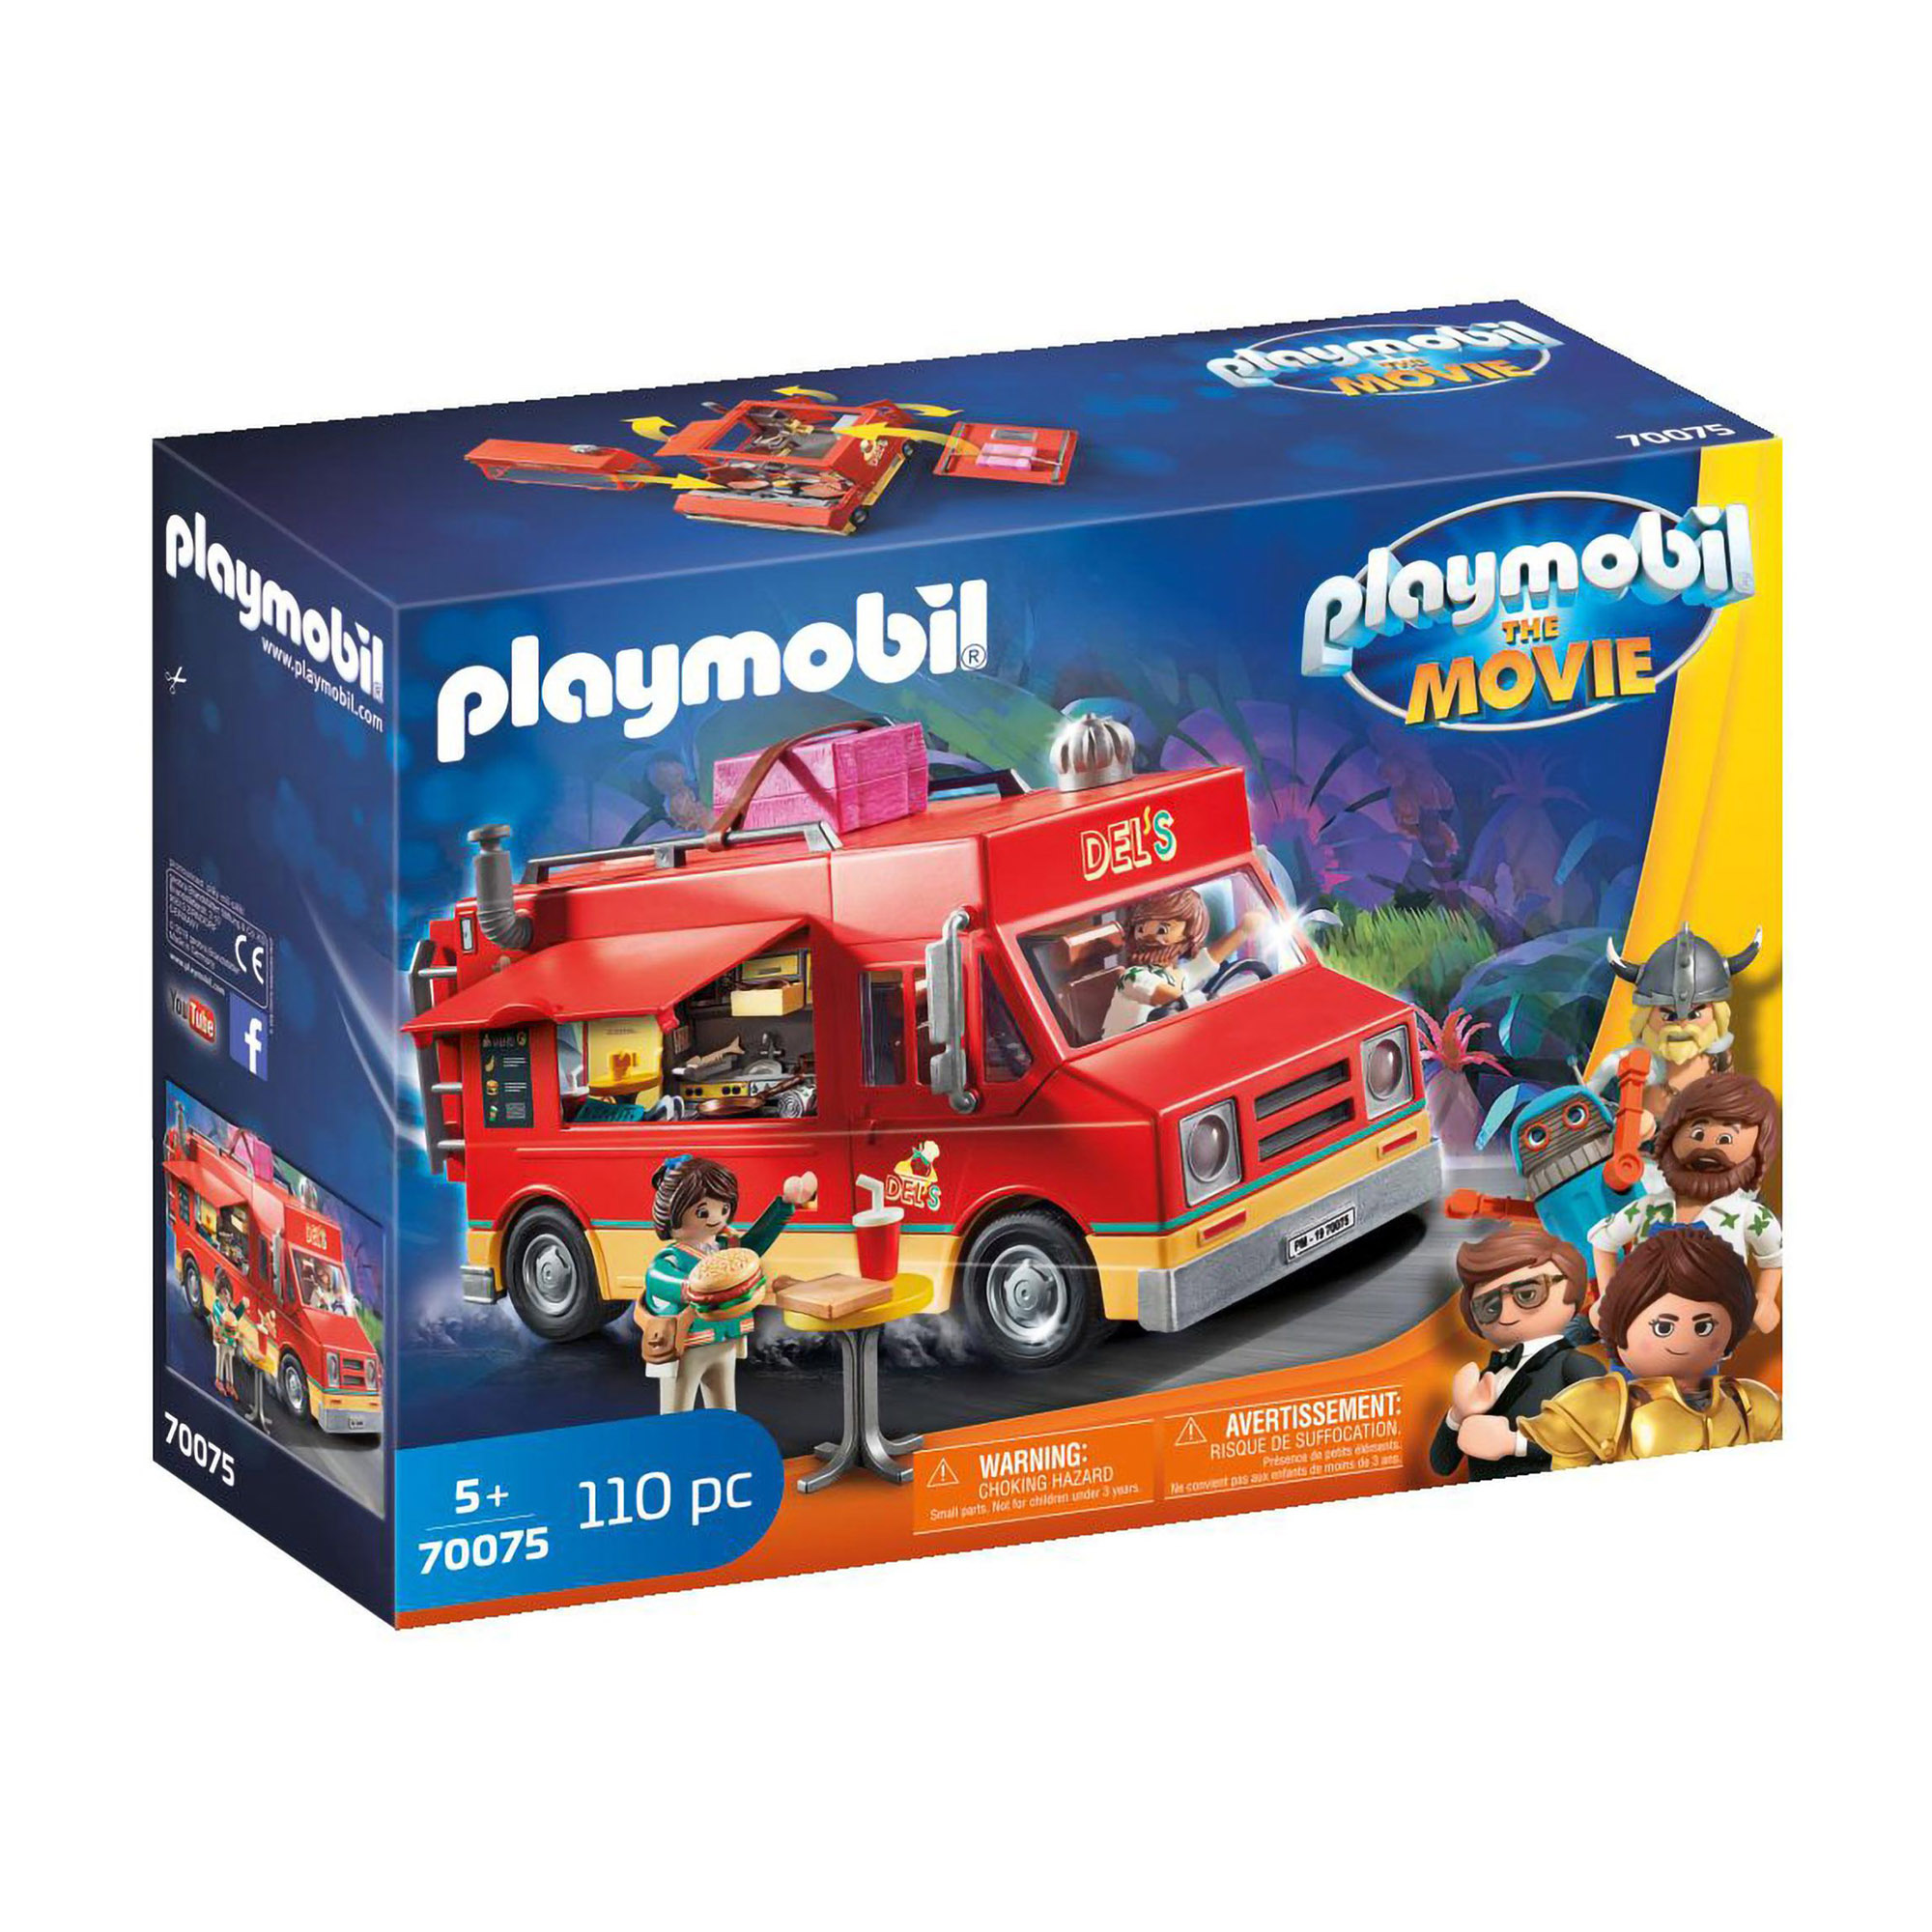 Playmobil 70075 Playmobil: THE MOVIE Dels Food Truck